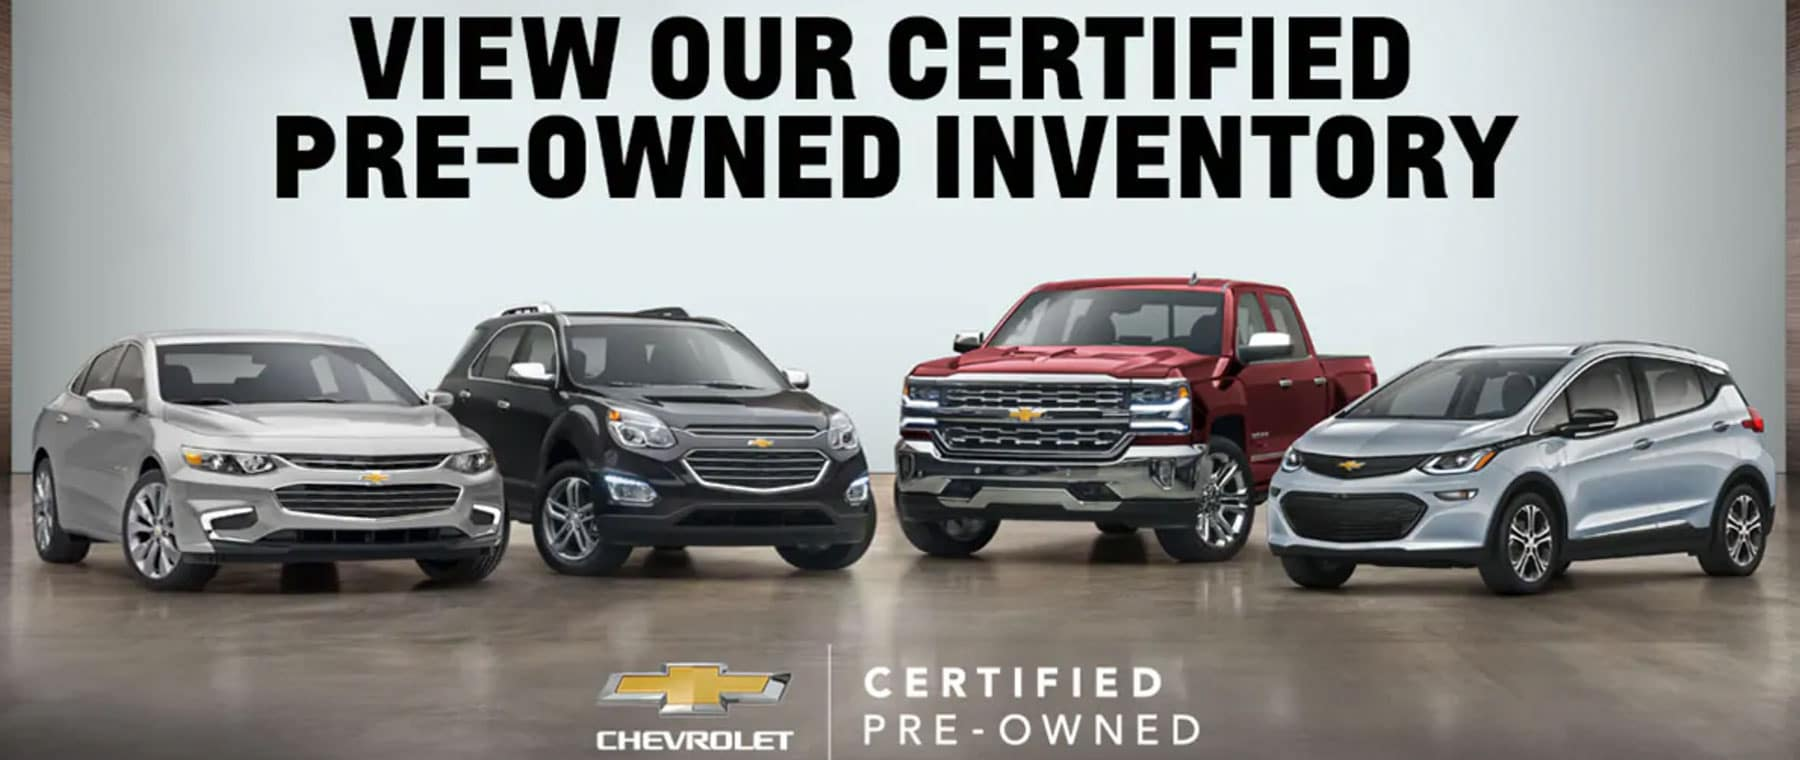 Sandy Sansing Chevrolet Pensacola FL Certified Preowned